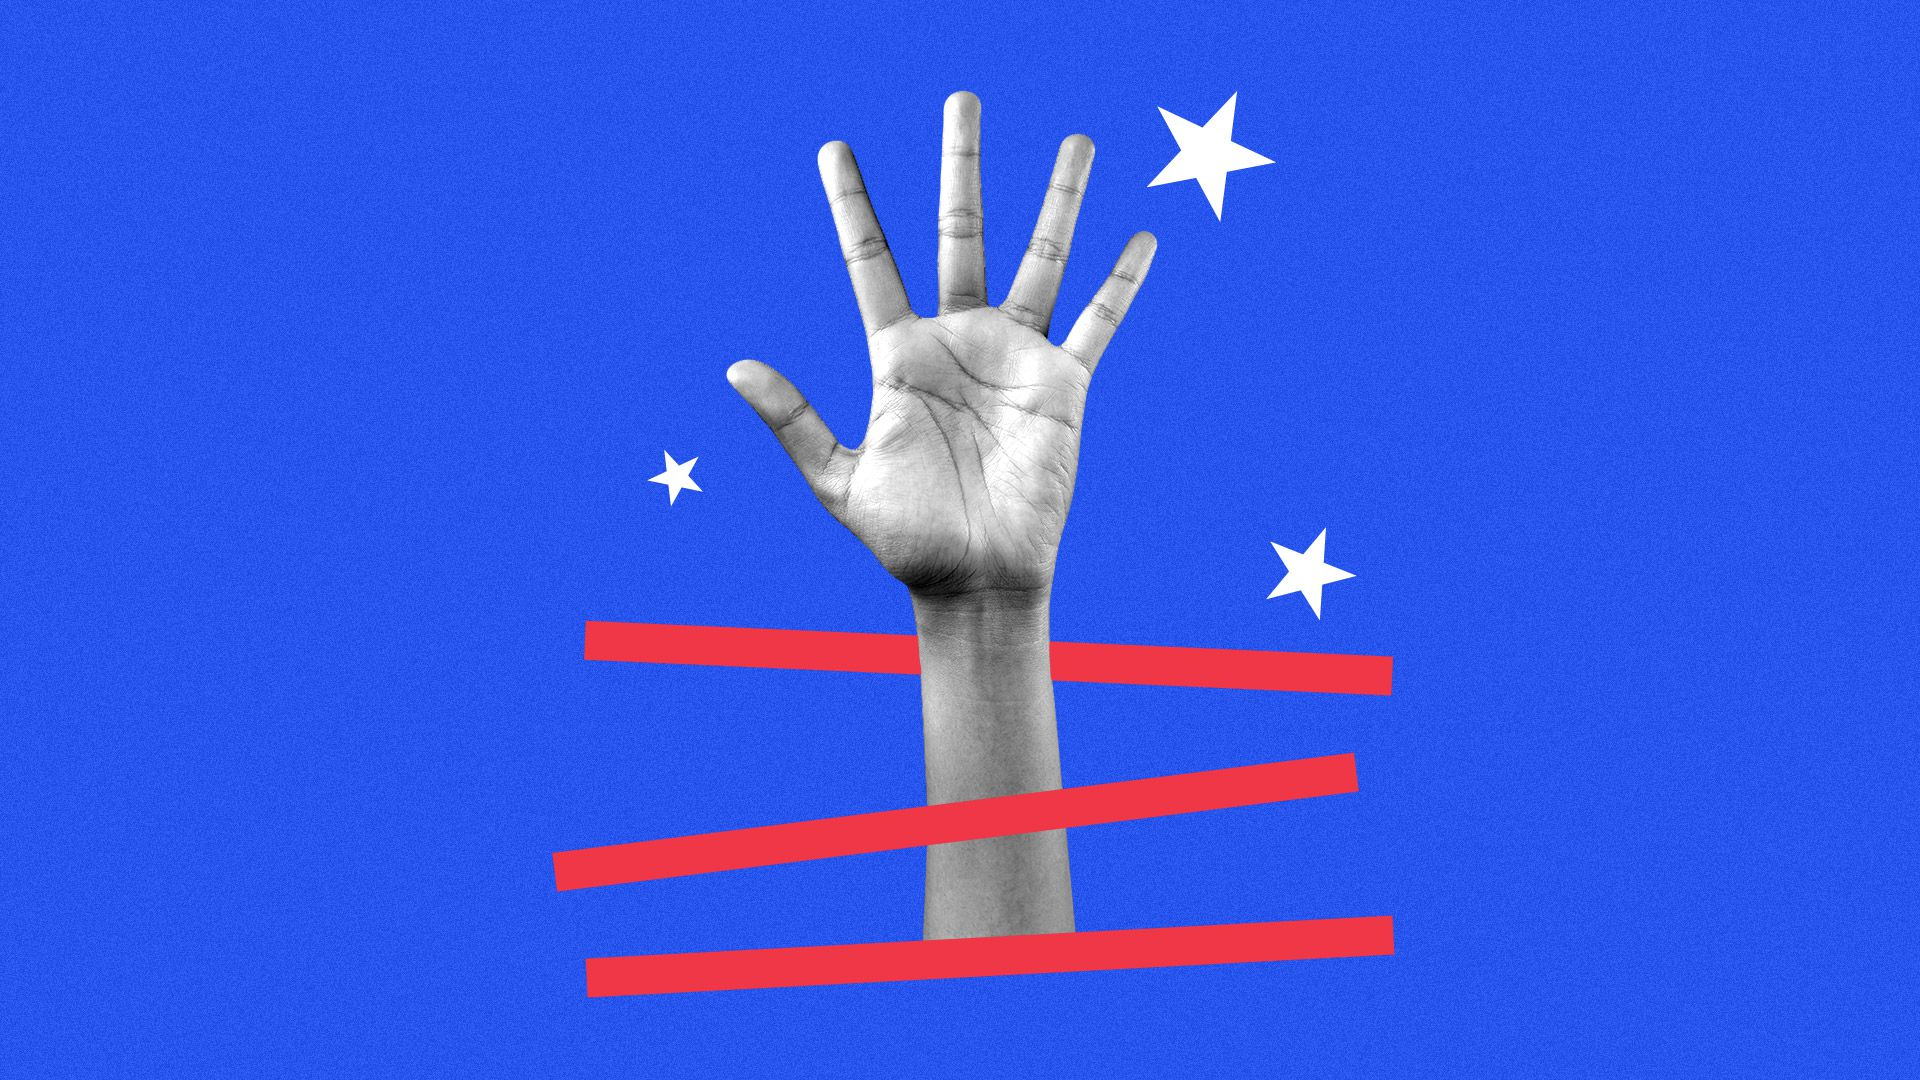 Illustration of a hand being raised with stars and stripes surrounding it